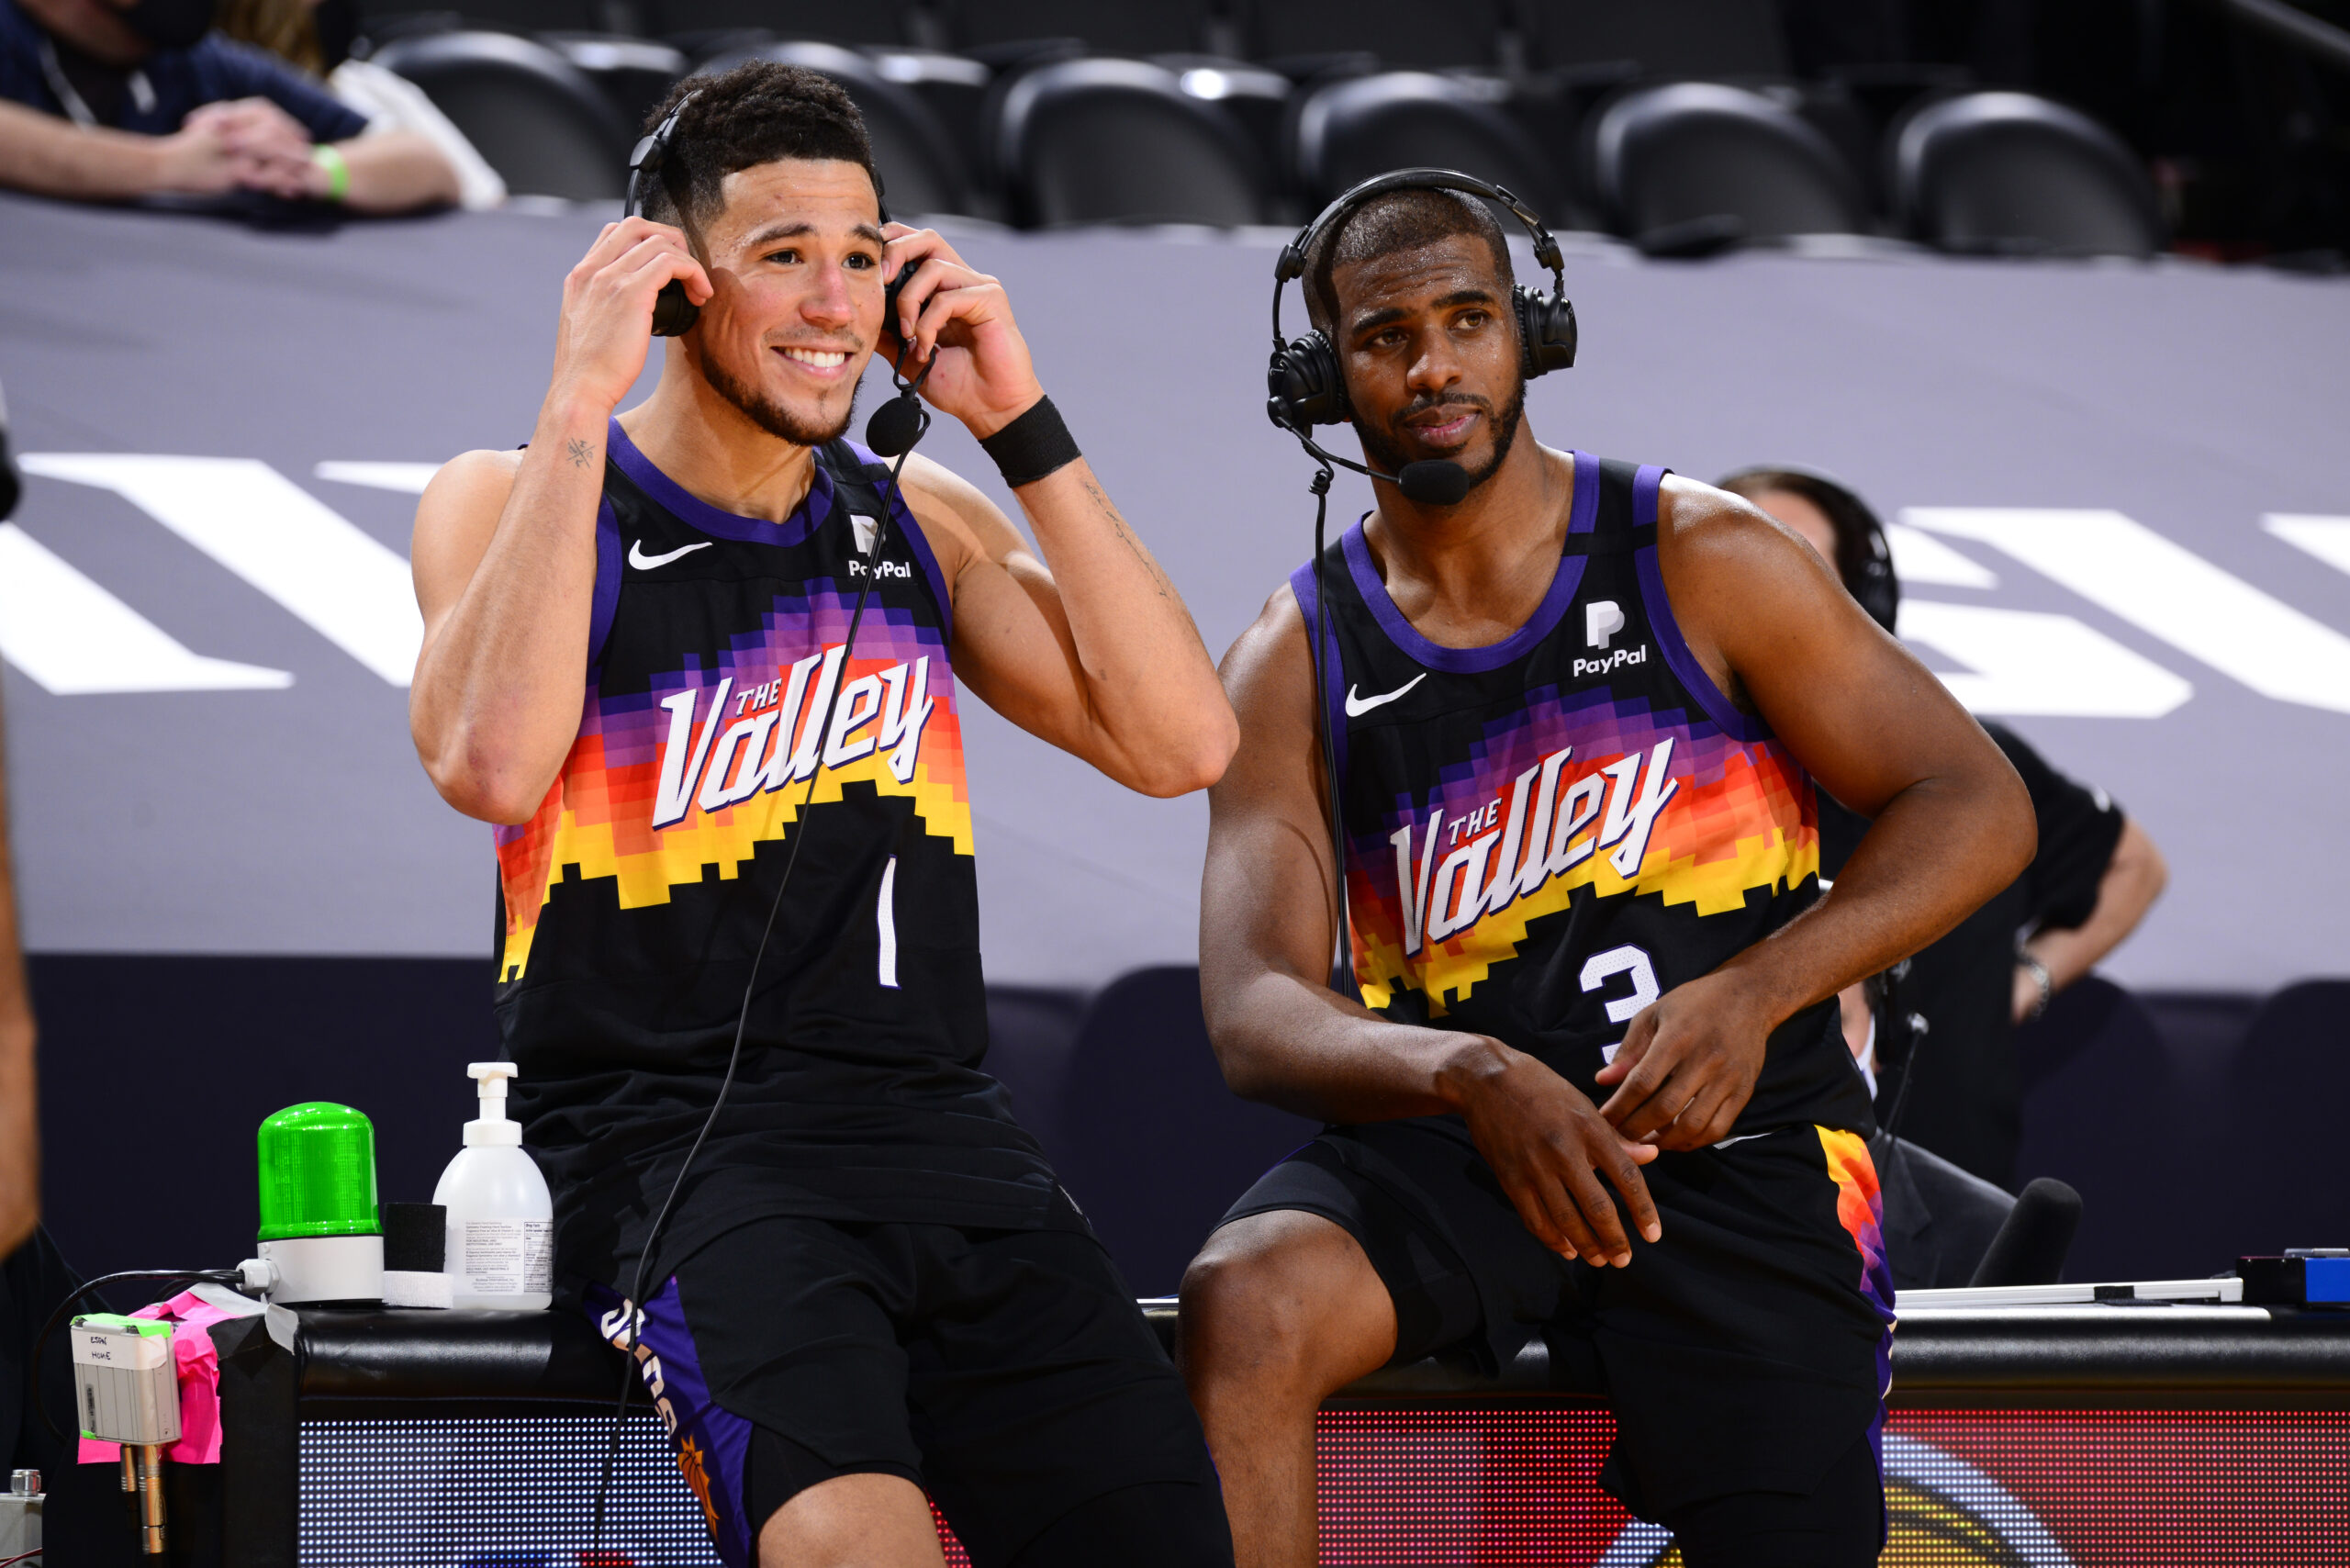 PHOENIX, AZ - APRIL 7: Devin Booker #1 and Chris Paul #3 of the Phoenix Suns get interviewed after the game against the Utah Jazz on April 7, 2021 at Phoenix Suns Arena in Phoenix, Arizona. NOTE TO USER: User expressly acknowledges and agrees that, by downloading and or using this photograph, user is consenting to the terms and conditions of the Getty Images License Agreement. Mandatory Copyright Notice: Copyright 2021 NBAE (Photo by Barry Gossage/NBAE via Getty Images)